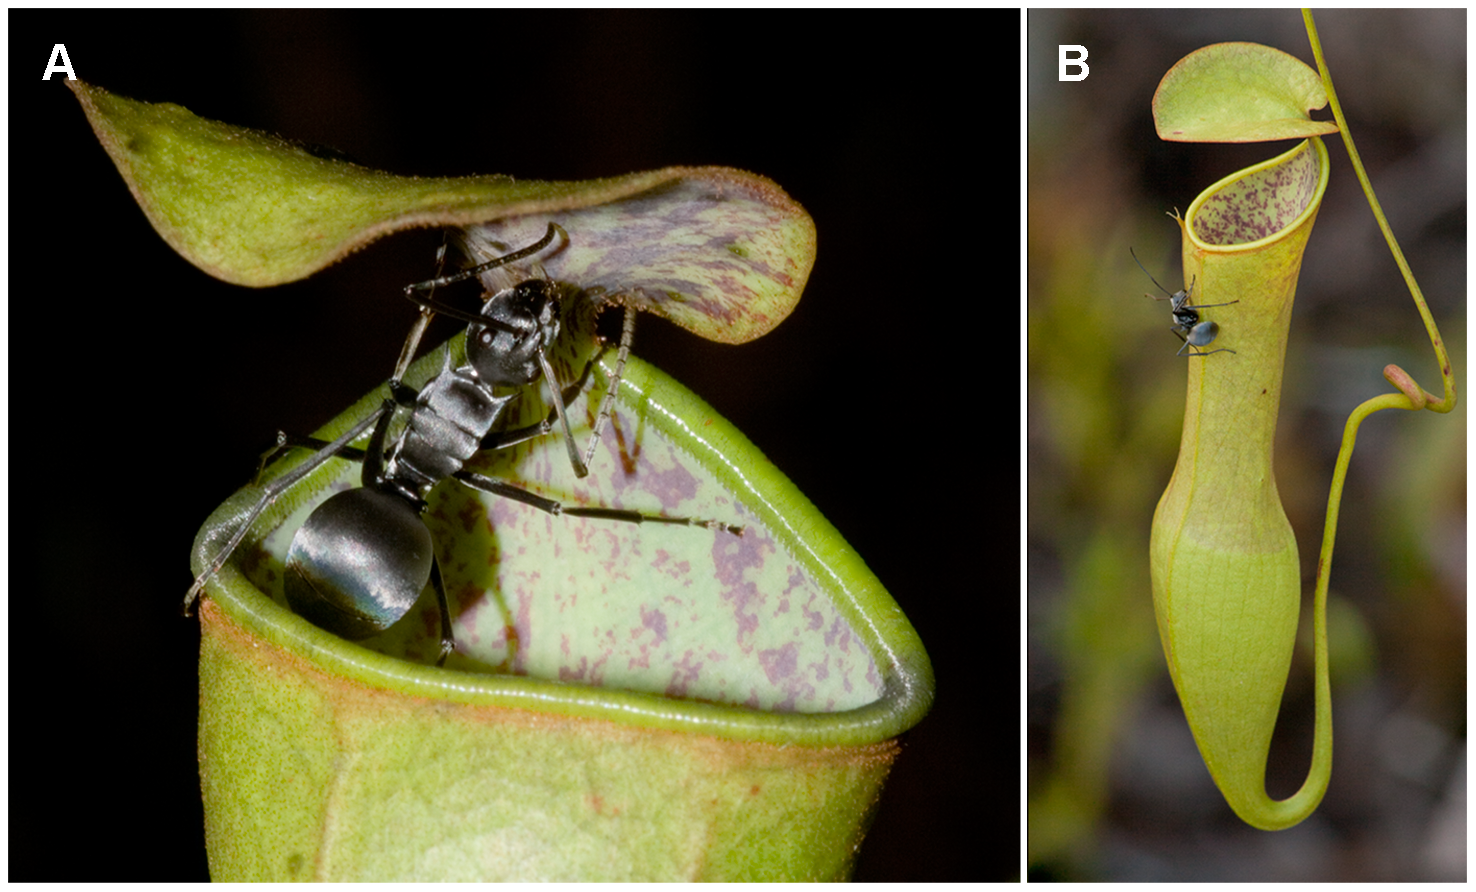 """(A) N. gracilis pitcher with visiting Polyrhachis pruinosa ant, showing the epicuticular wax crystal surfaces on the inner pitcher wall and on the underside of the pitcher lid. (B) The horizontal orientation directly above the pitcher opening puts the lower lid surface in an ideal position for prey capture."" Source: Baur et al, 2012. PloS one"